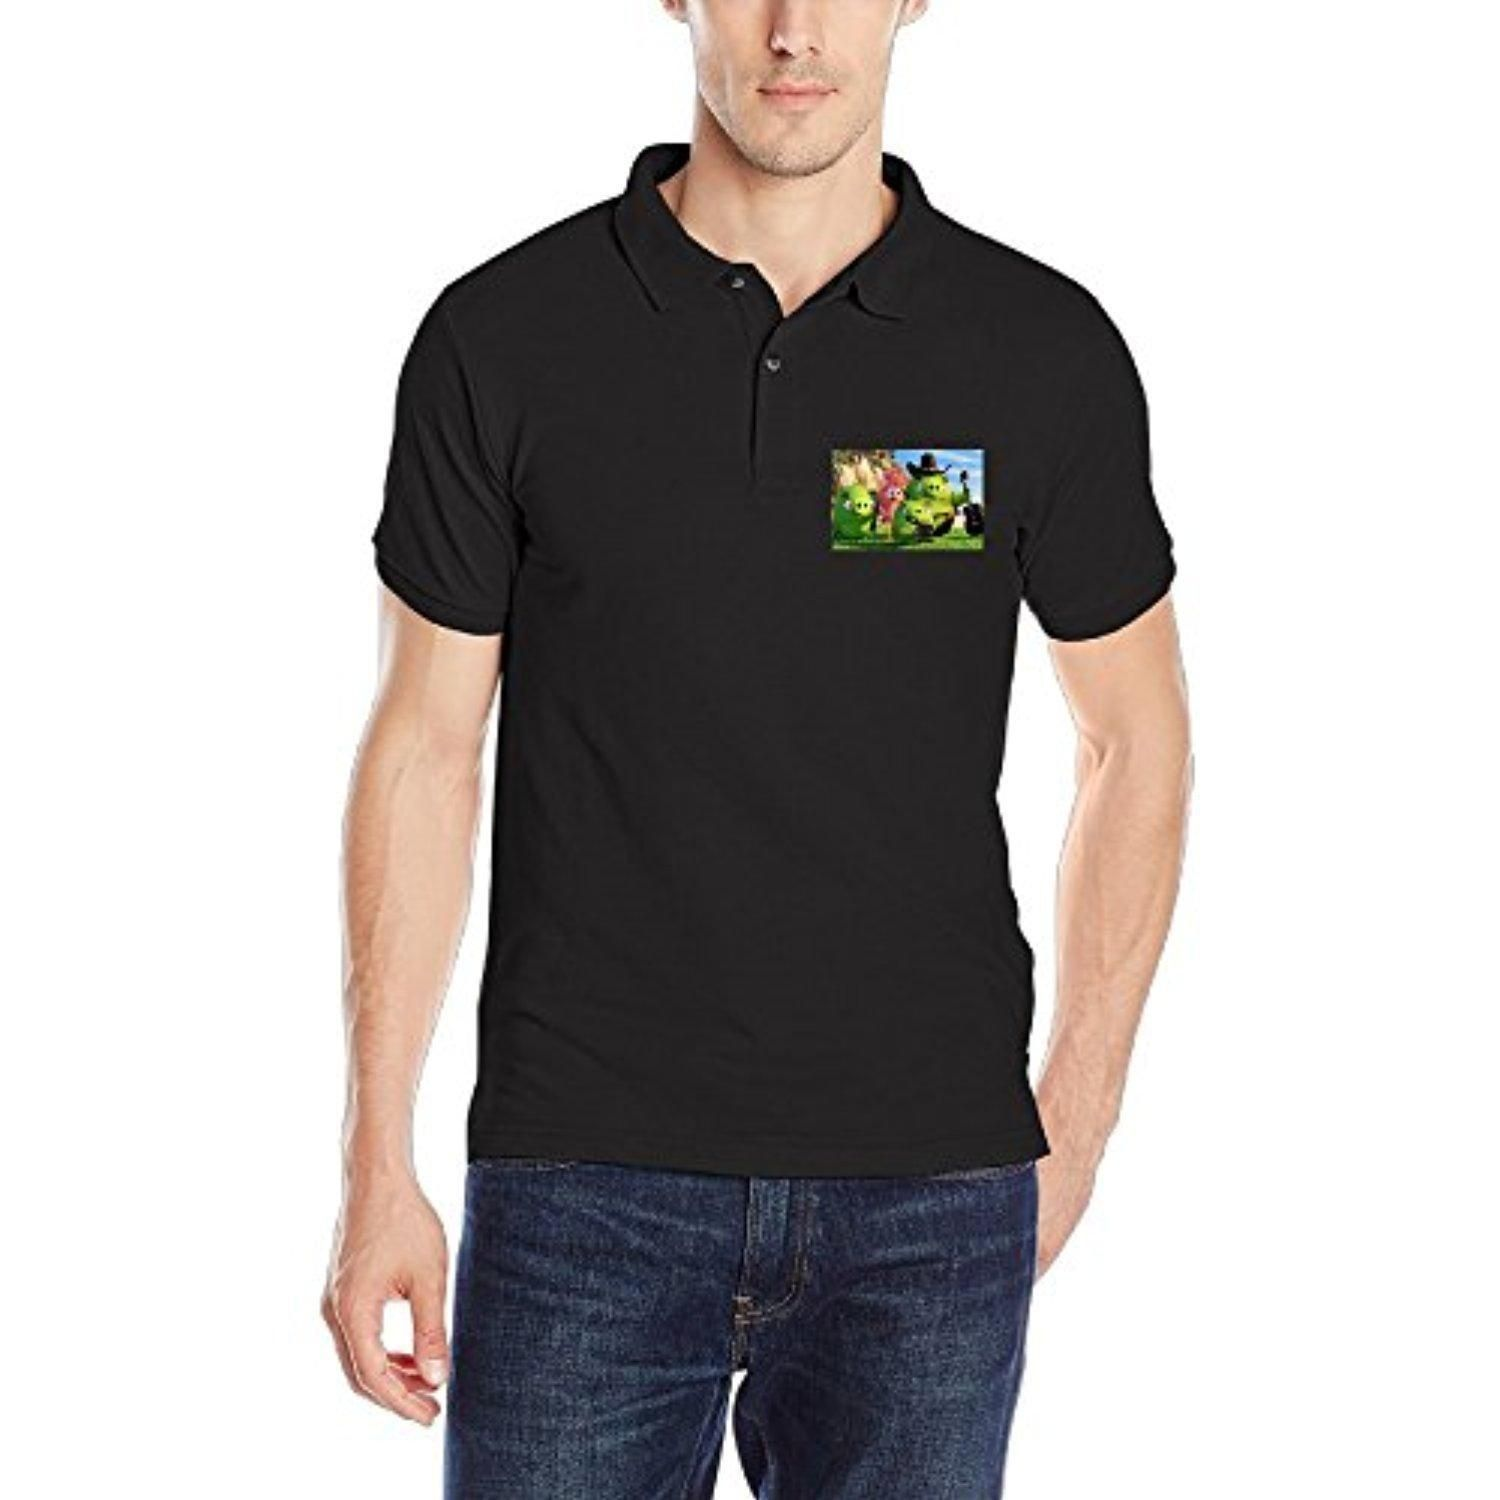 FCOH Men's Short Sleeve Tee Polo T Shirt Angry B Black S. - Brought to you by Avarsha.com